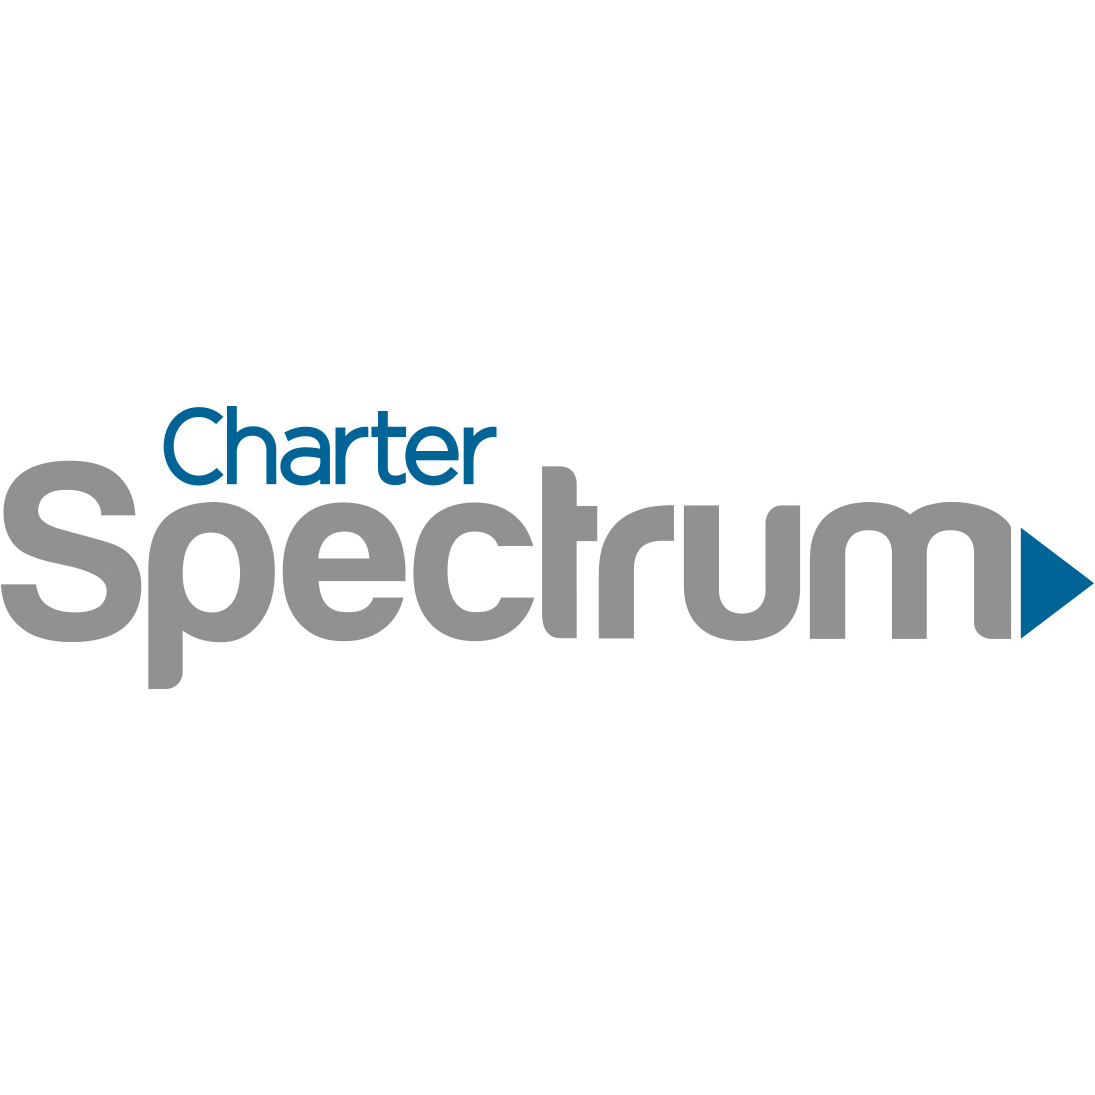 Charter spectrum logog also time warner cable is now rh democratandchronicle